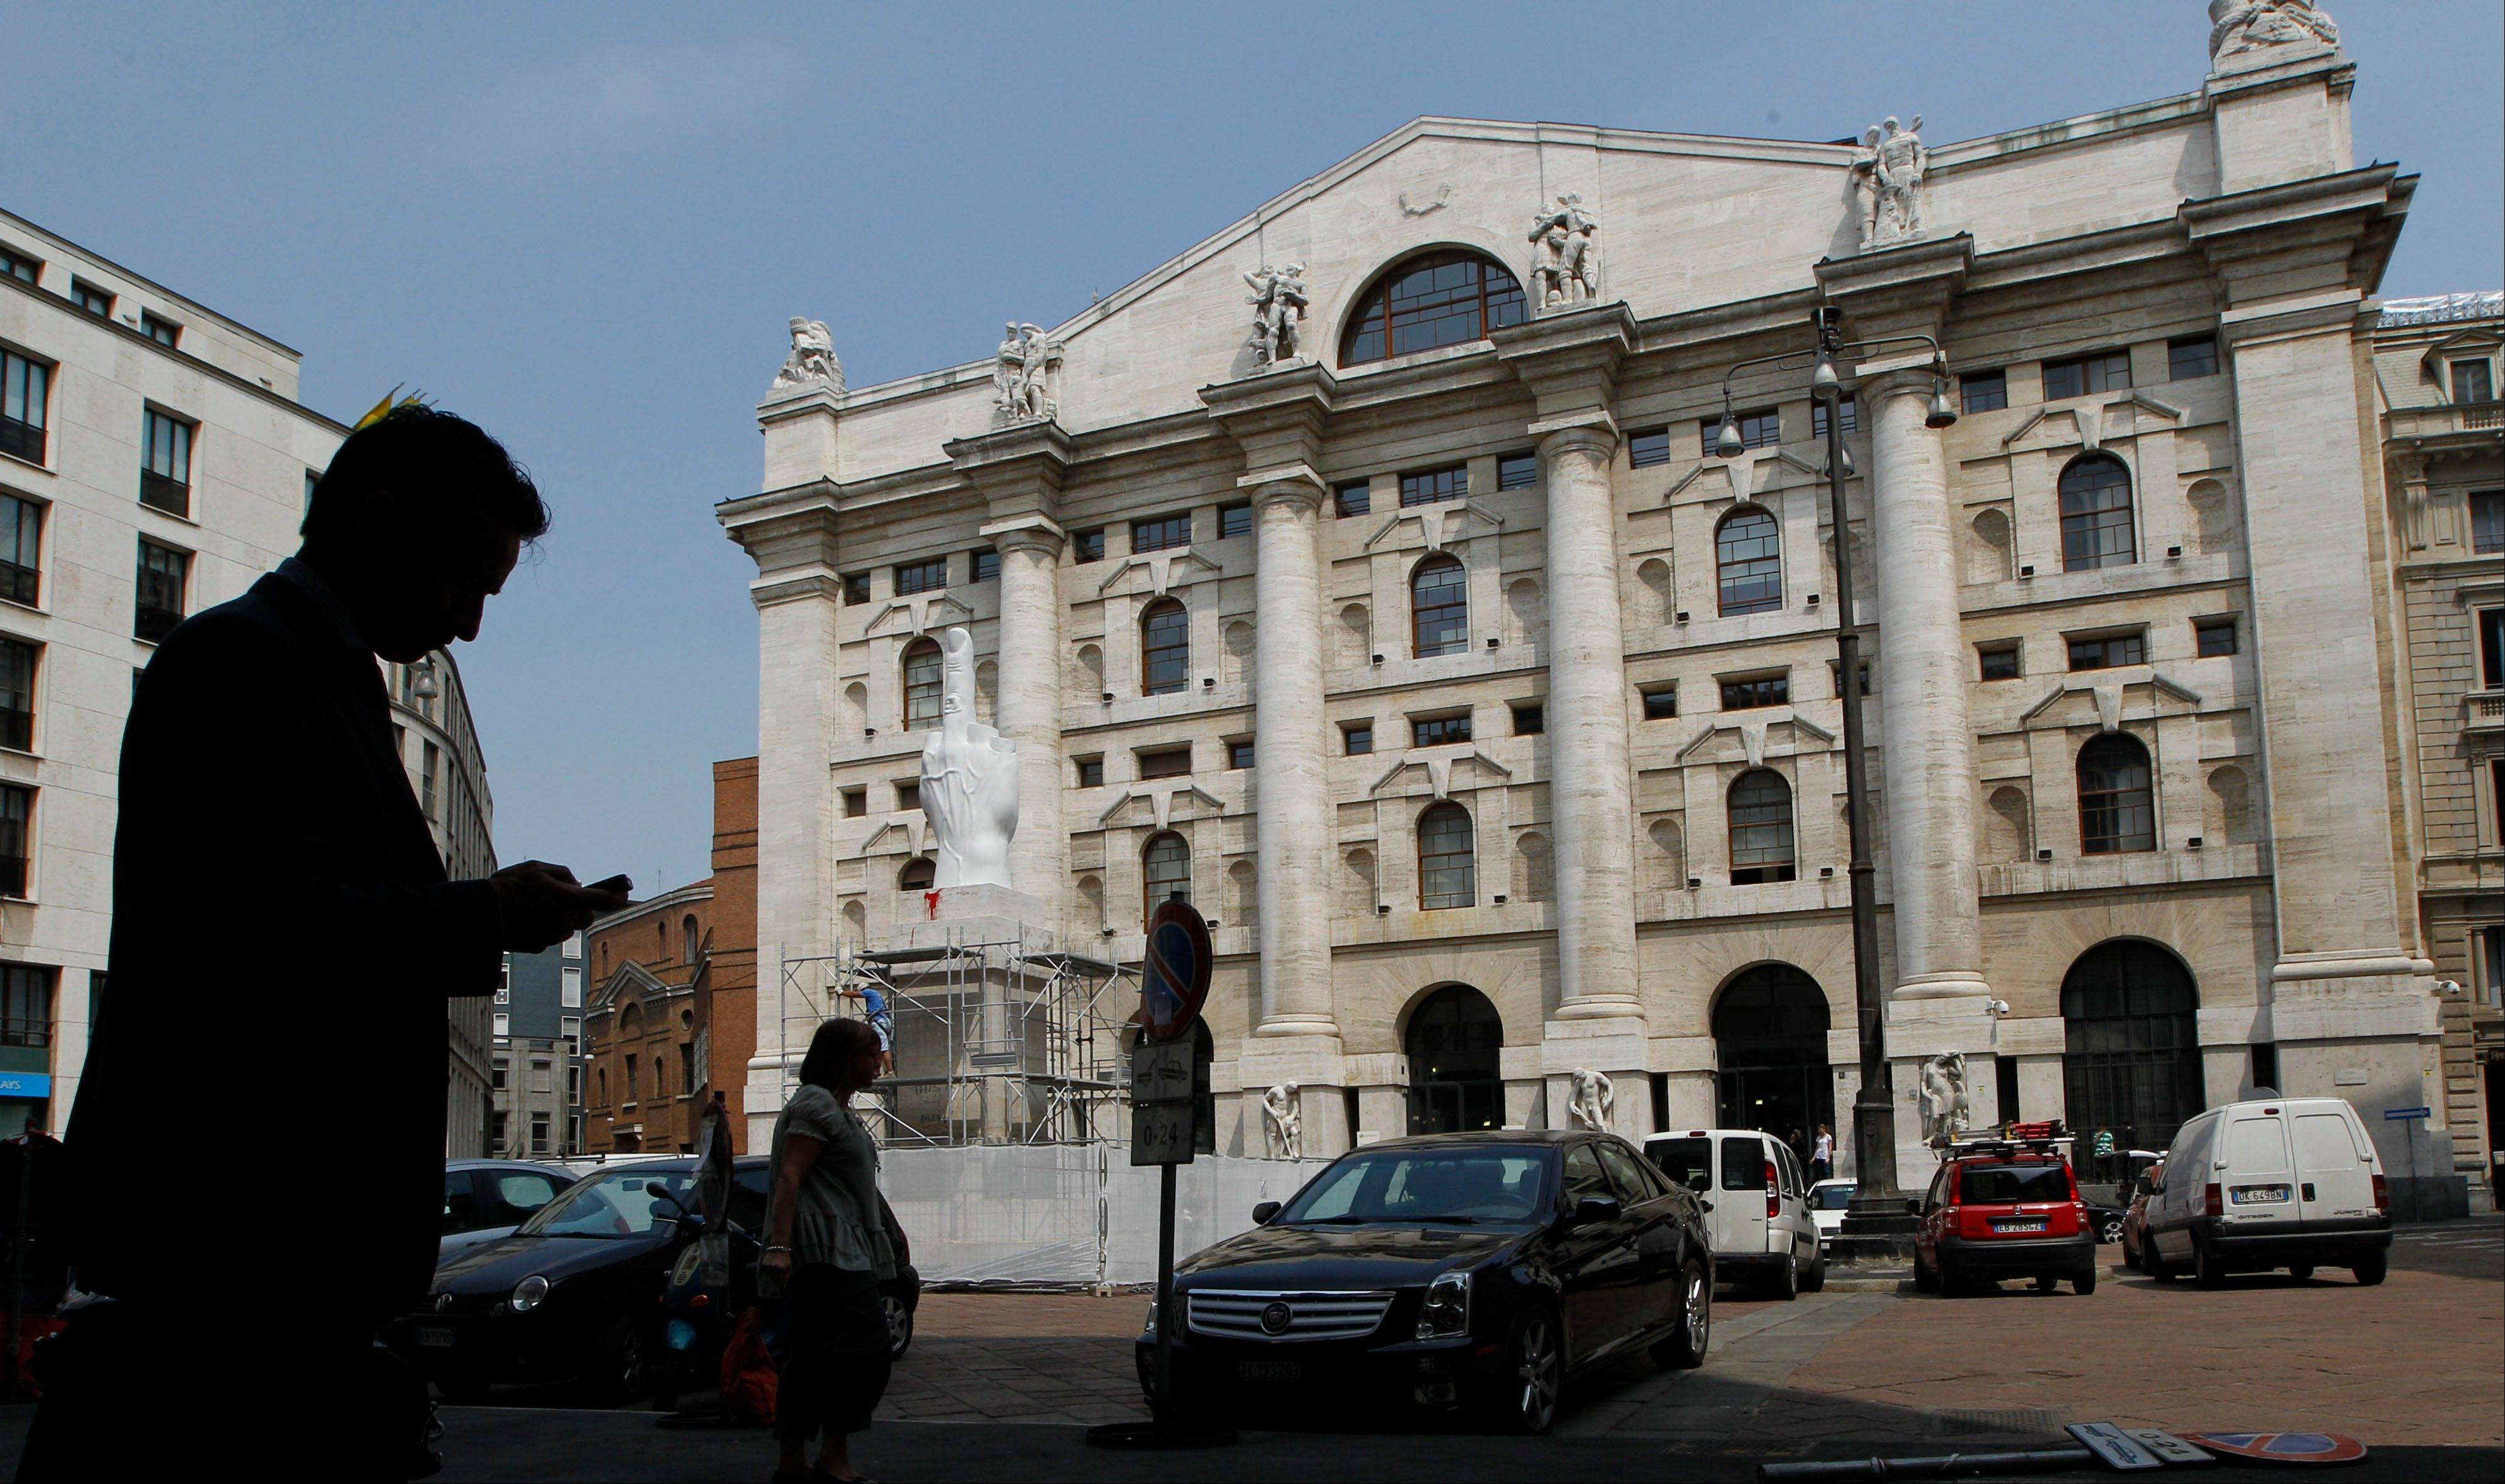 A man stands in front of the stock exchange market building in Milan, Italy. Italy�s market watchdog on Monday imposed a week-long ban on the short-selling of financial stocks as the Milan index plunged amid fears that if Spain needs a bailout, Italy could be next.